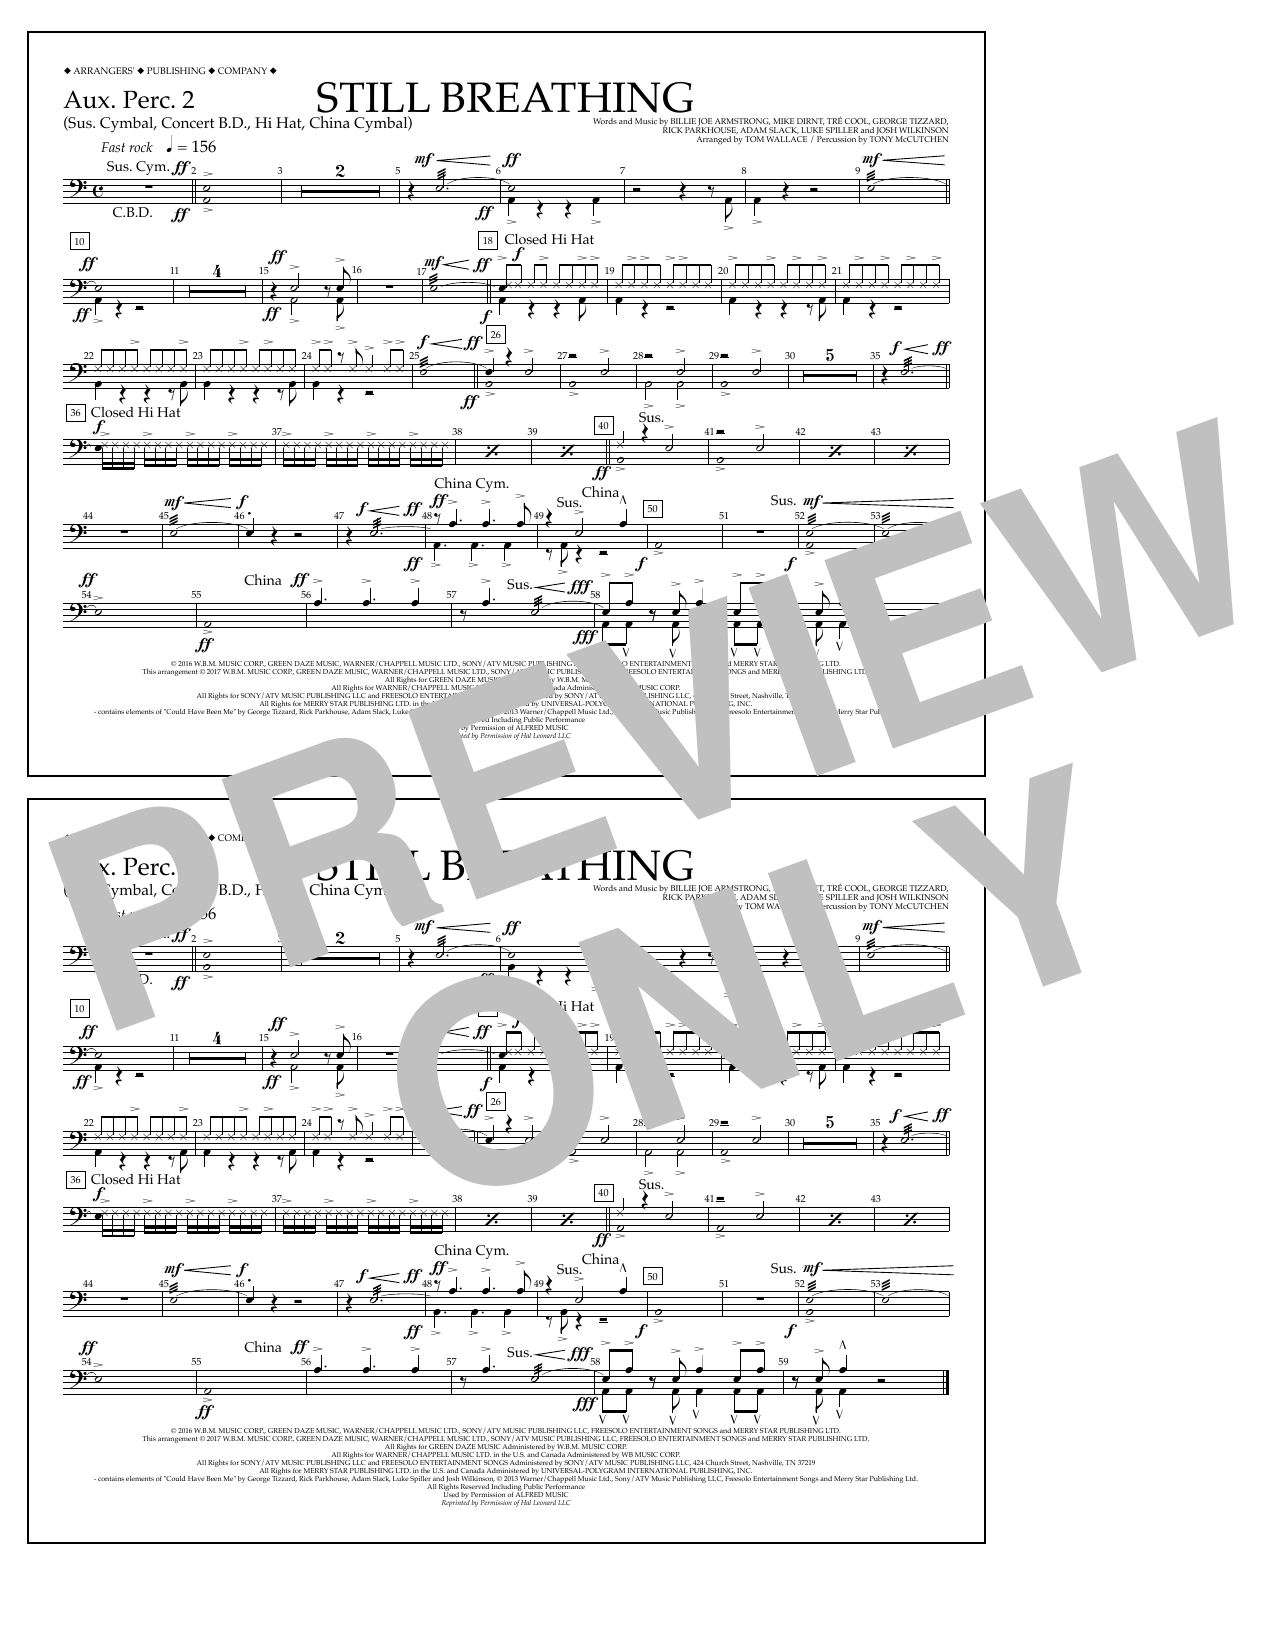 Still Breathing - Aux. Perc. 2 Sheet Music